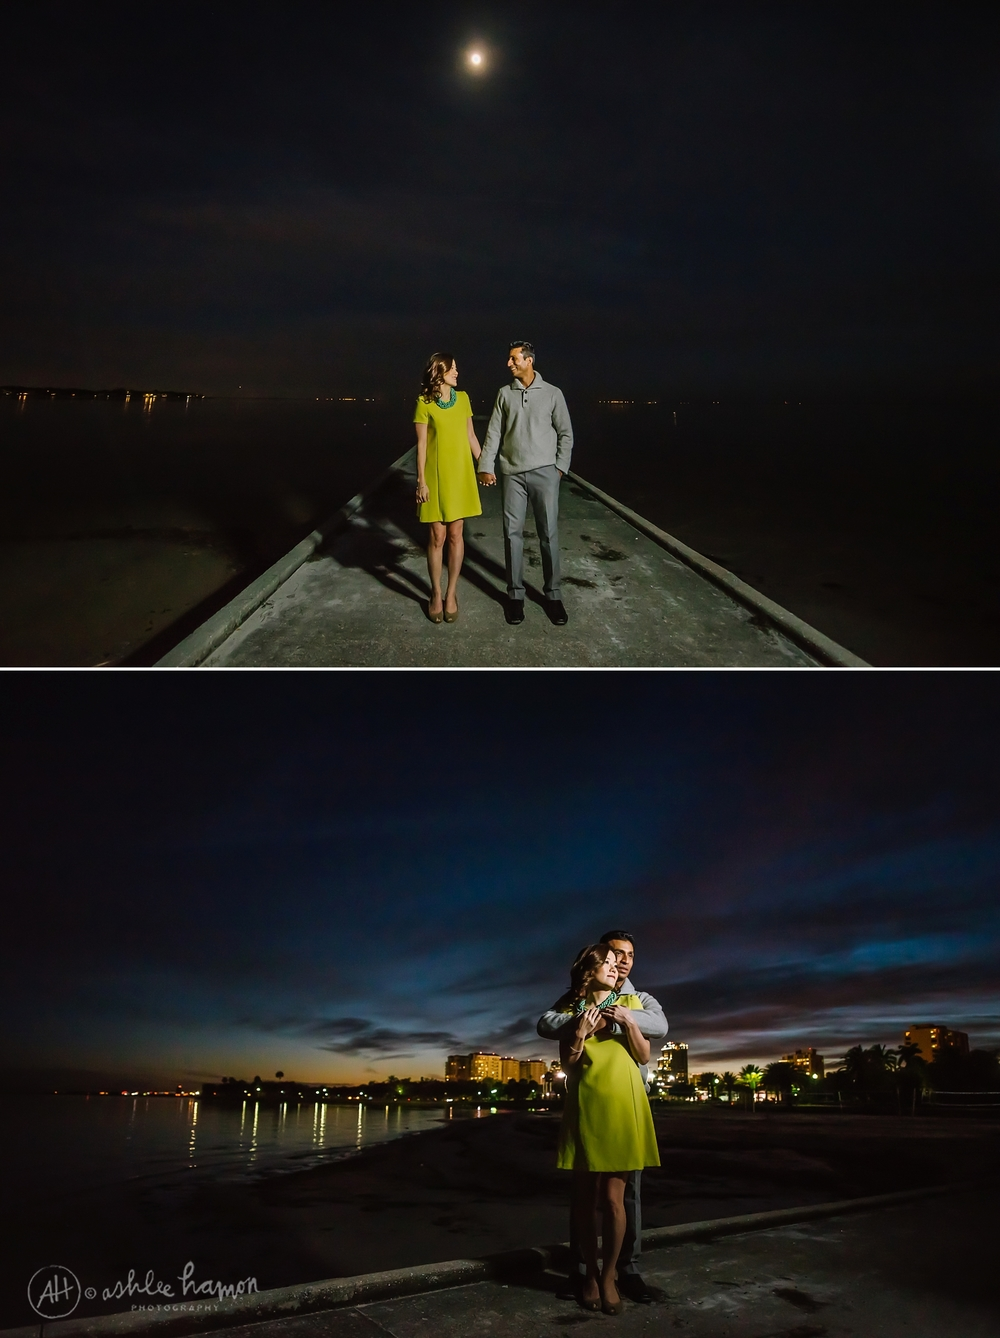 st-pete-marina-engagement-photography_0008.jpg